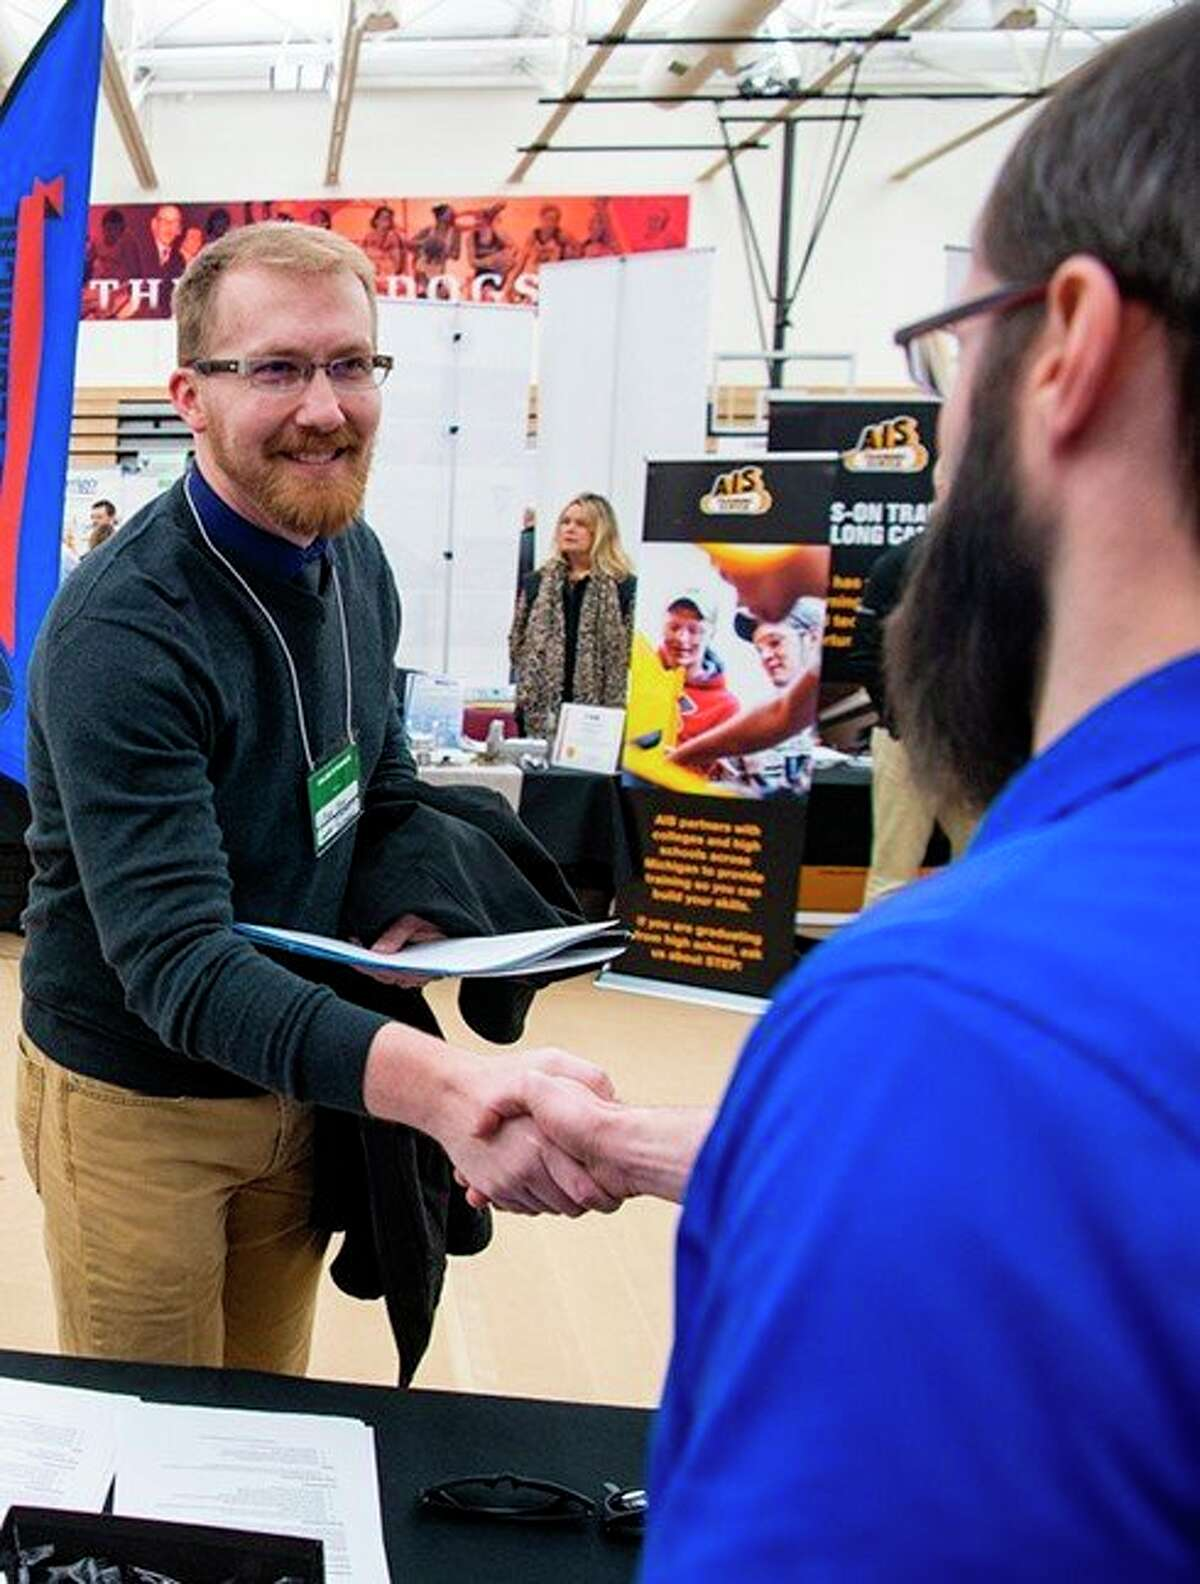 Ferris State University students and alumni are encouraged to review opportunities and access Handshake, or the Center for Leadership, Activities and Career Services ahead of Career and Internship Fairs during the Spring 2021 semester. The first of three fairs took place Feb. 17-18. (Courtesy photo)